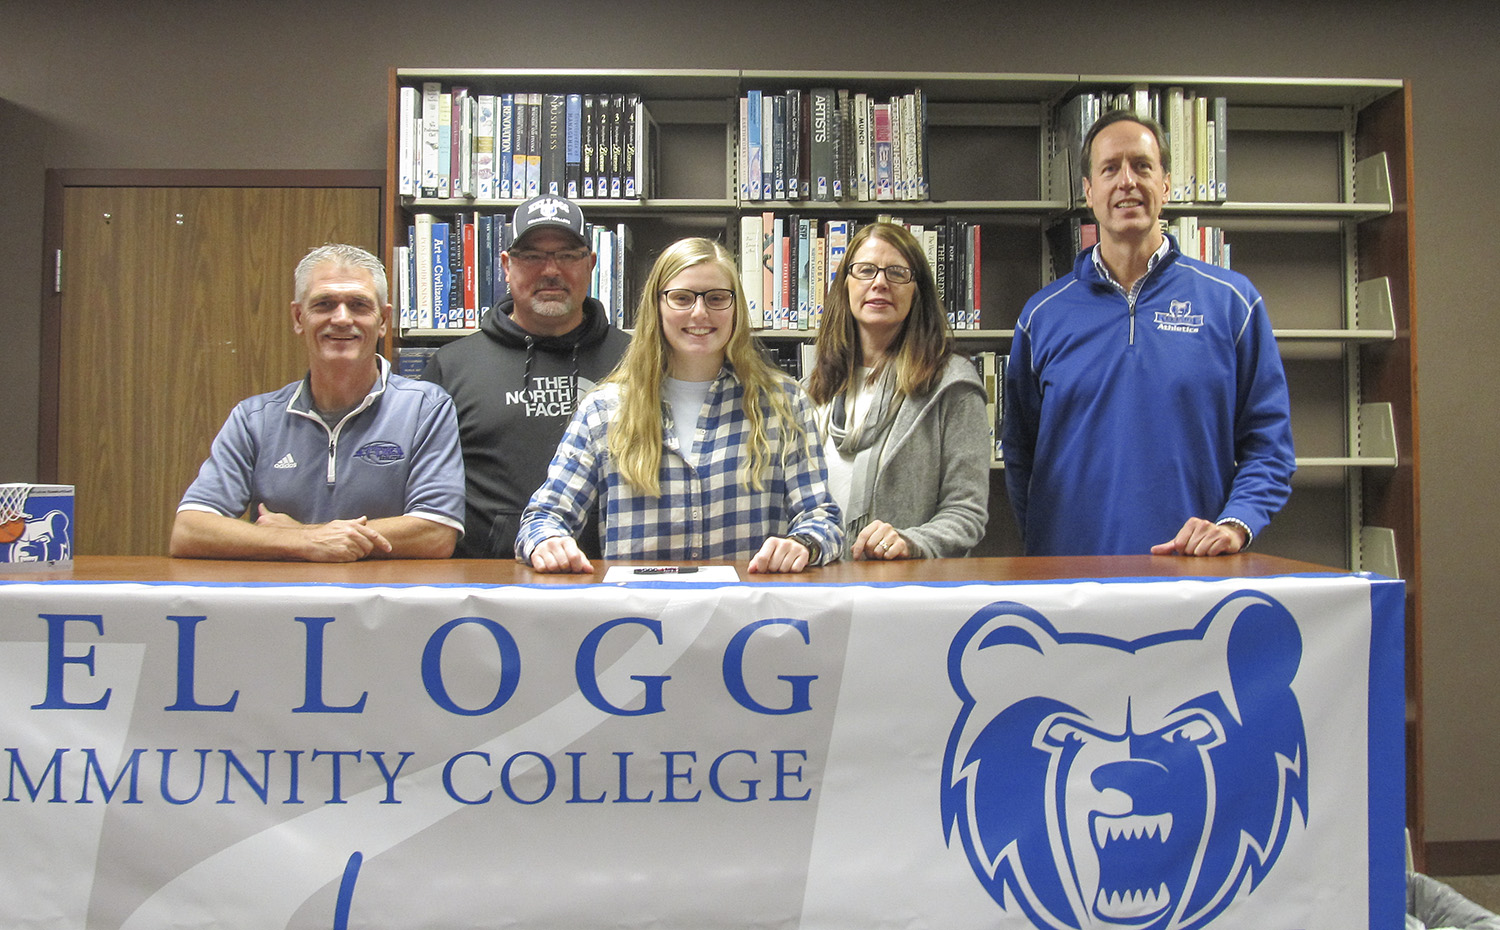 Pictured from left to right are Attack Basketball Coach Alton Tucker, Todd Niedzwiecki (father), KCC basketball signee Meg Niedzwiecki, Julie Niedzwiecki (mother) and KCC's Head Women's Basketball Coach Dic Doumanian.